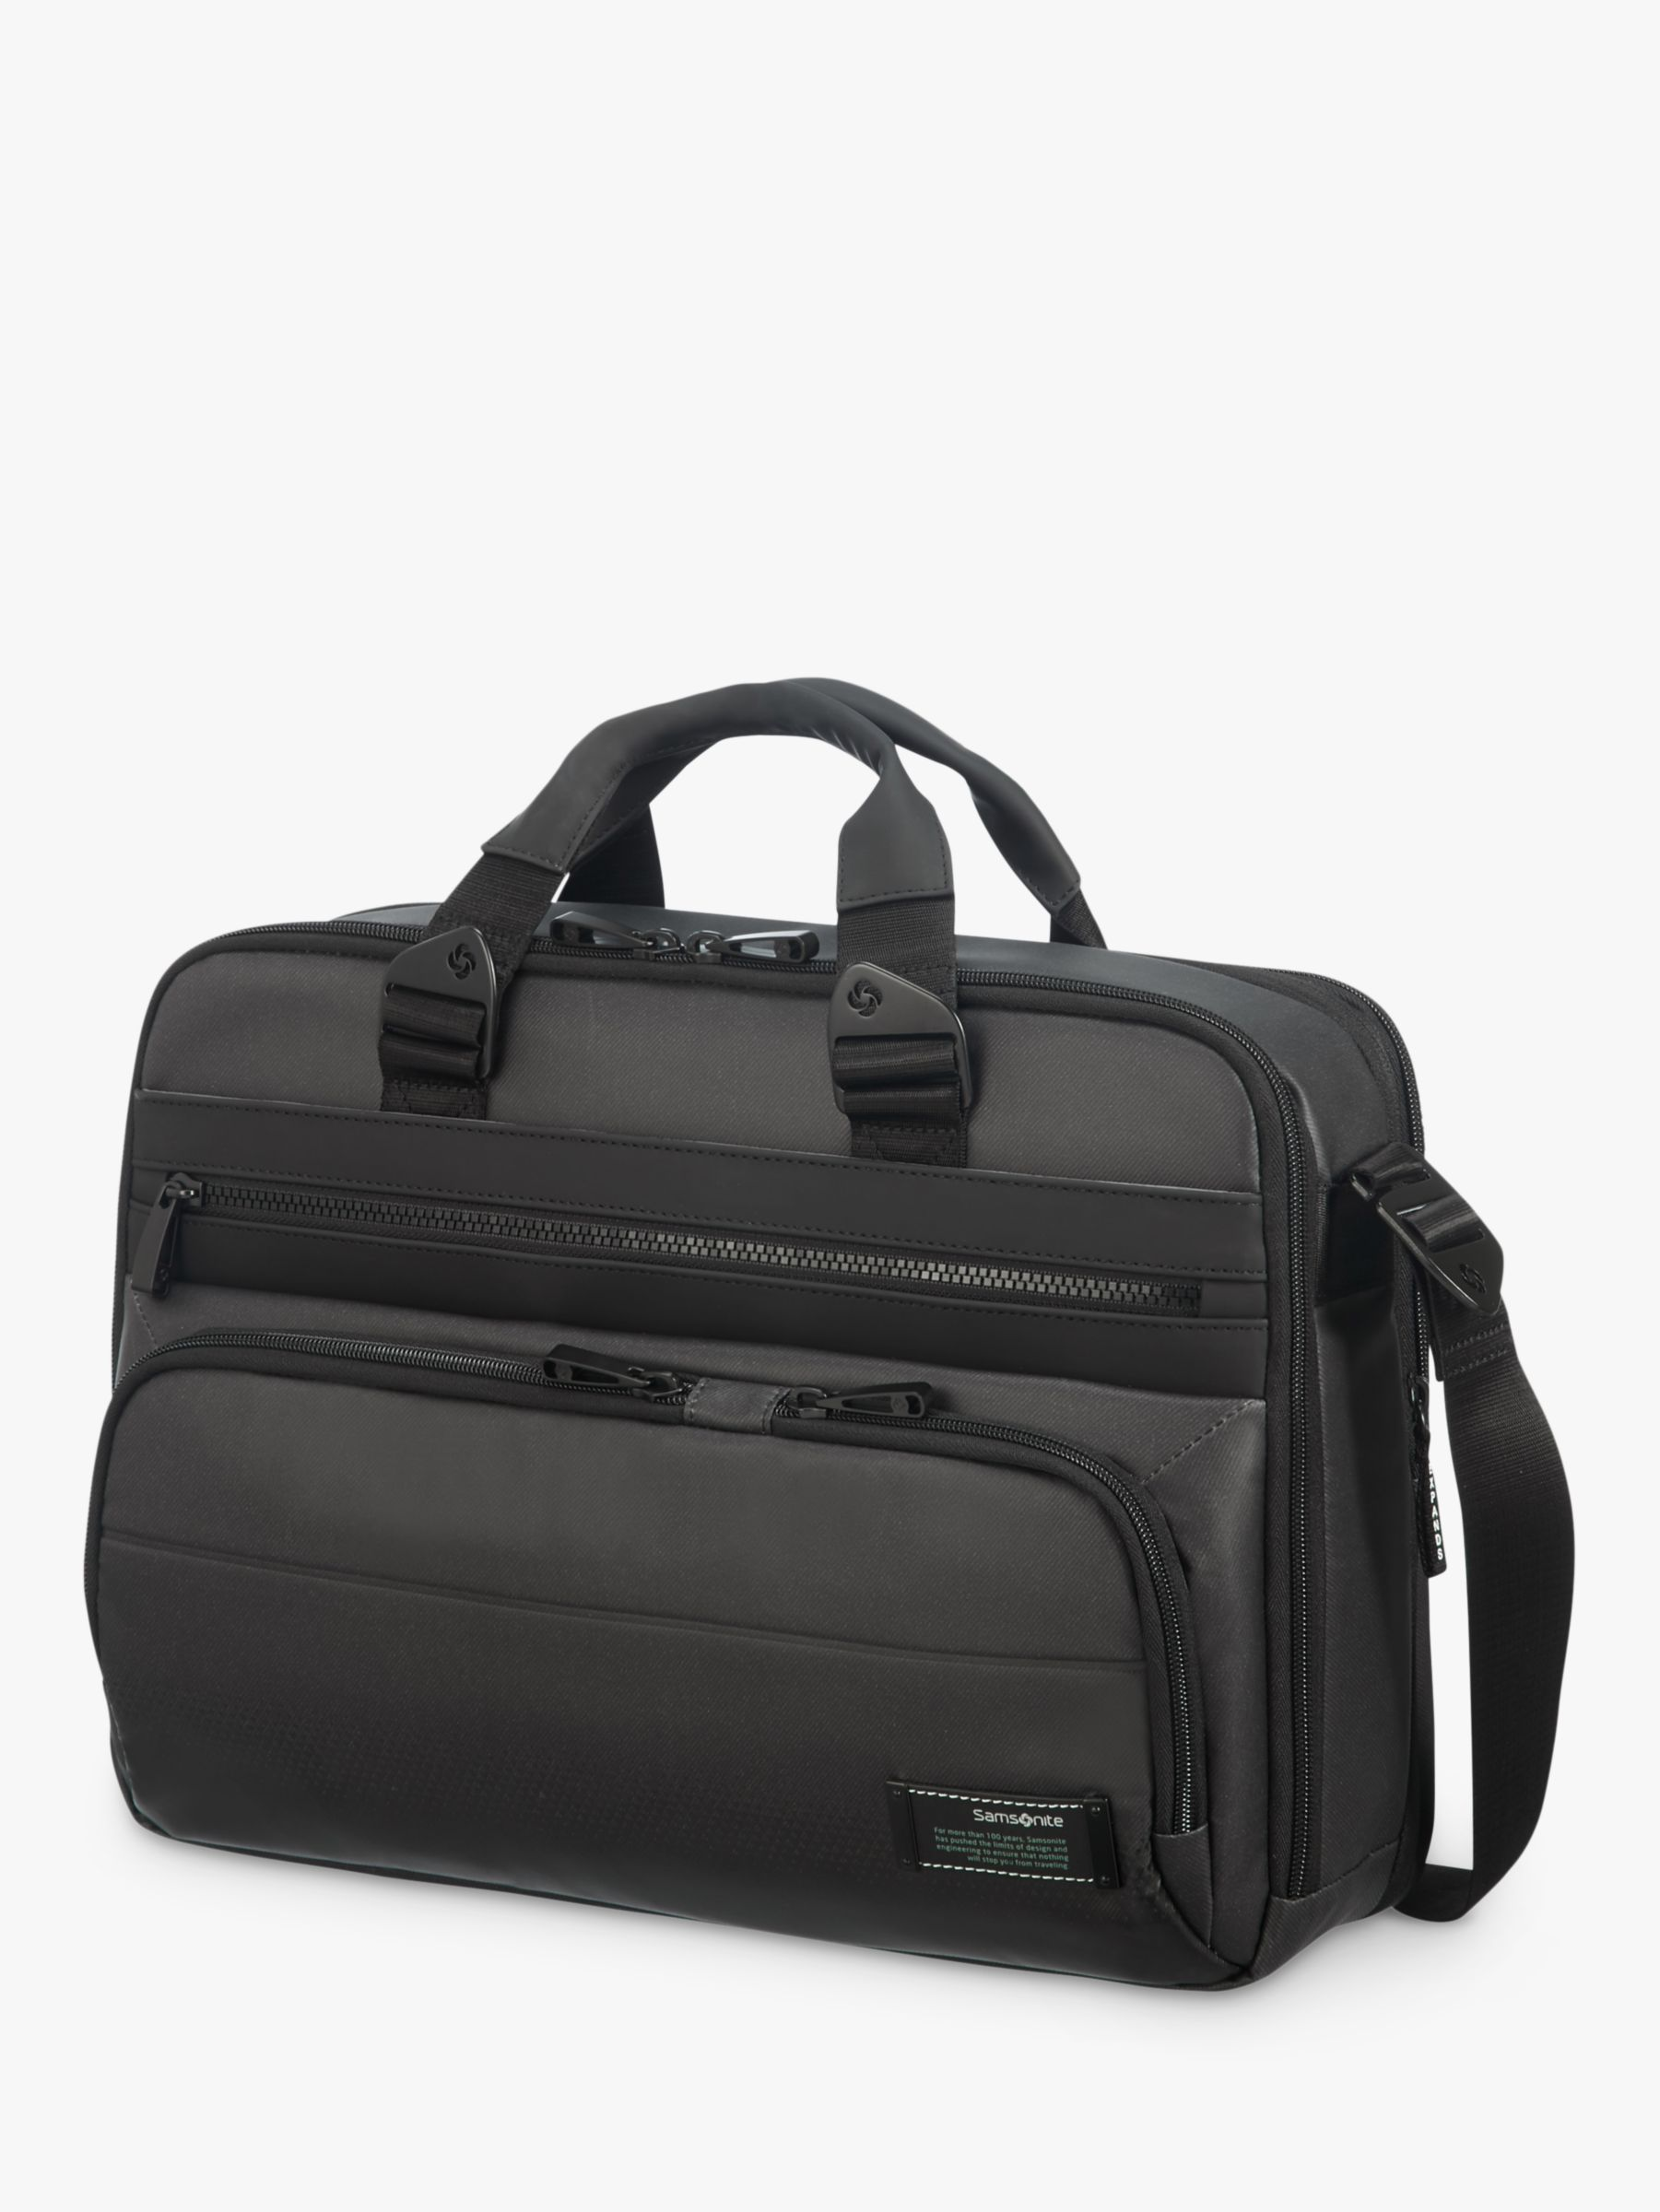 Samsonite Samsonite Cityvibe 2.0 15.6 Laptop Bail Handle Briefcase